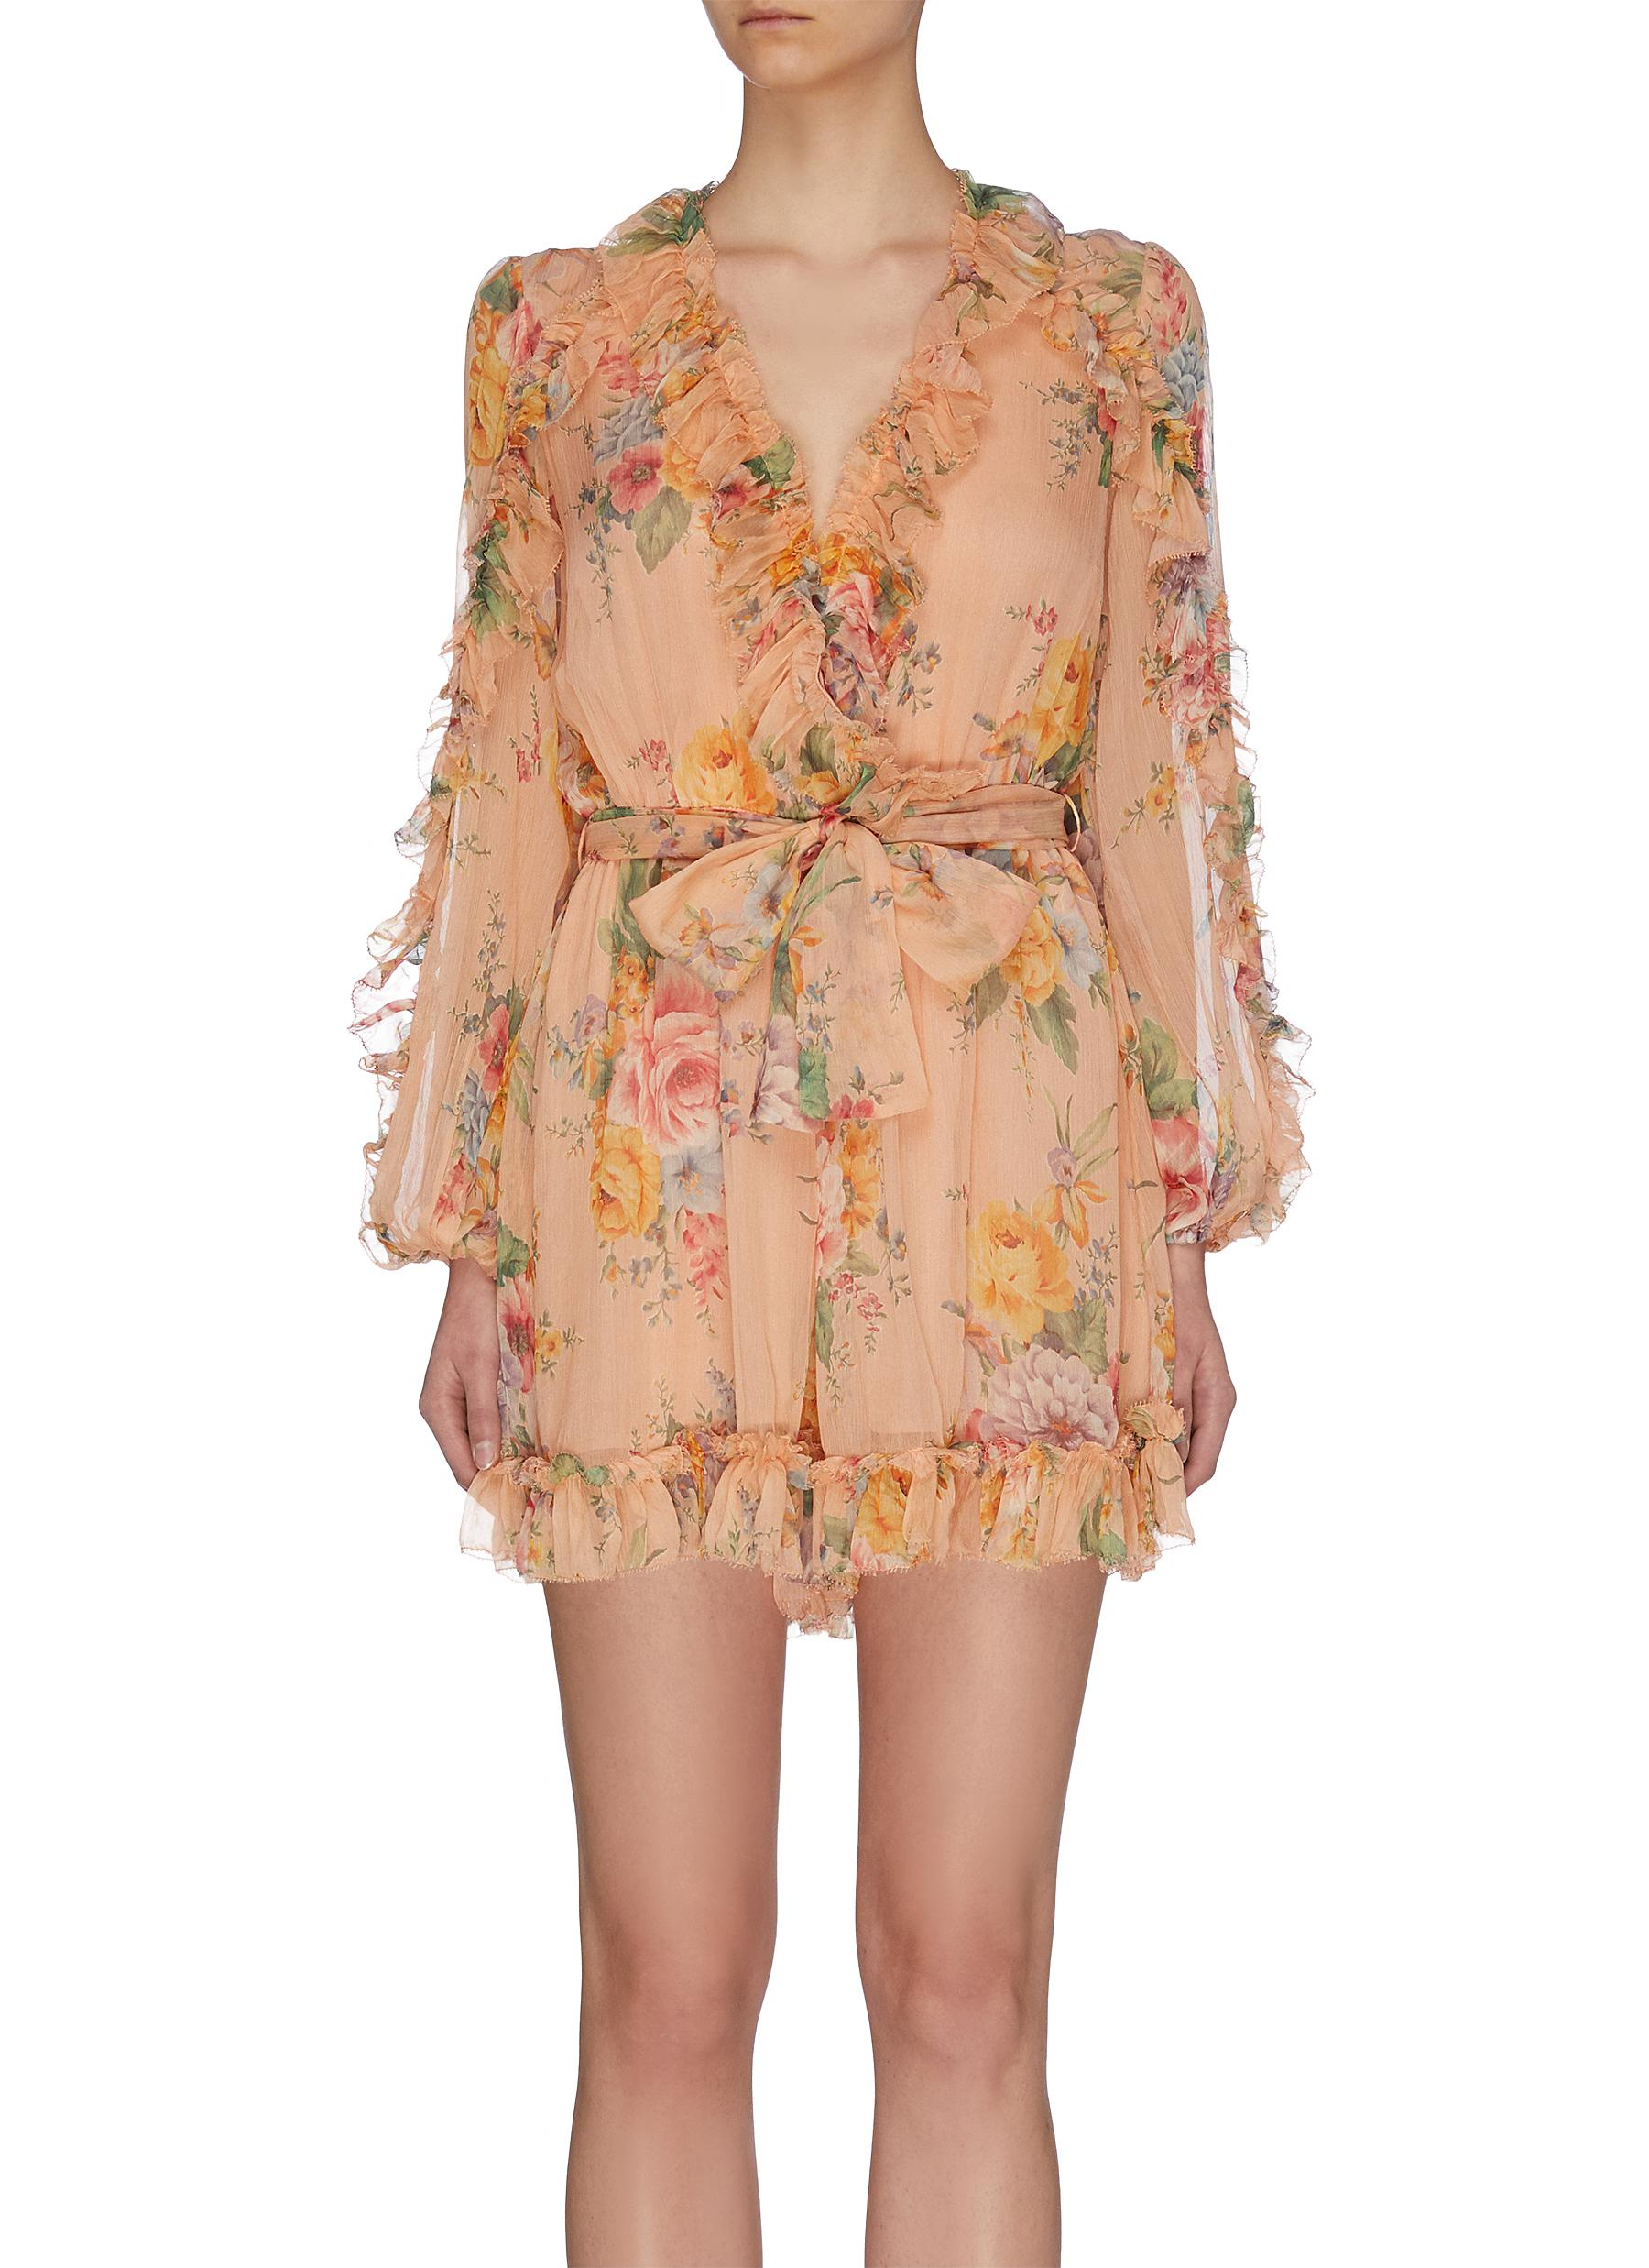 Buy Zimmermann Pants & Shorts 'Zinnia' plunge ruffle trim floral print playsuit